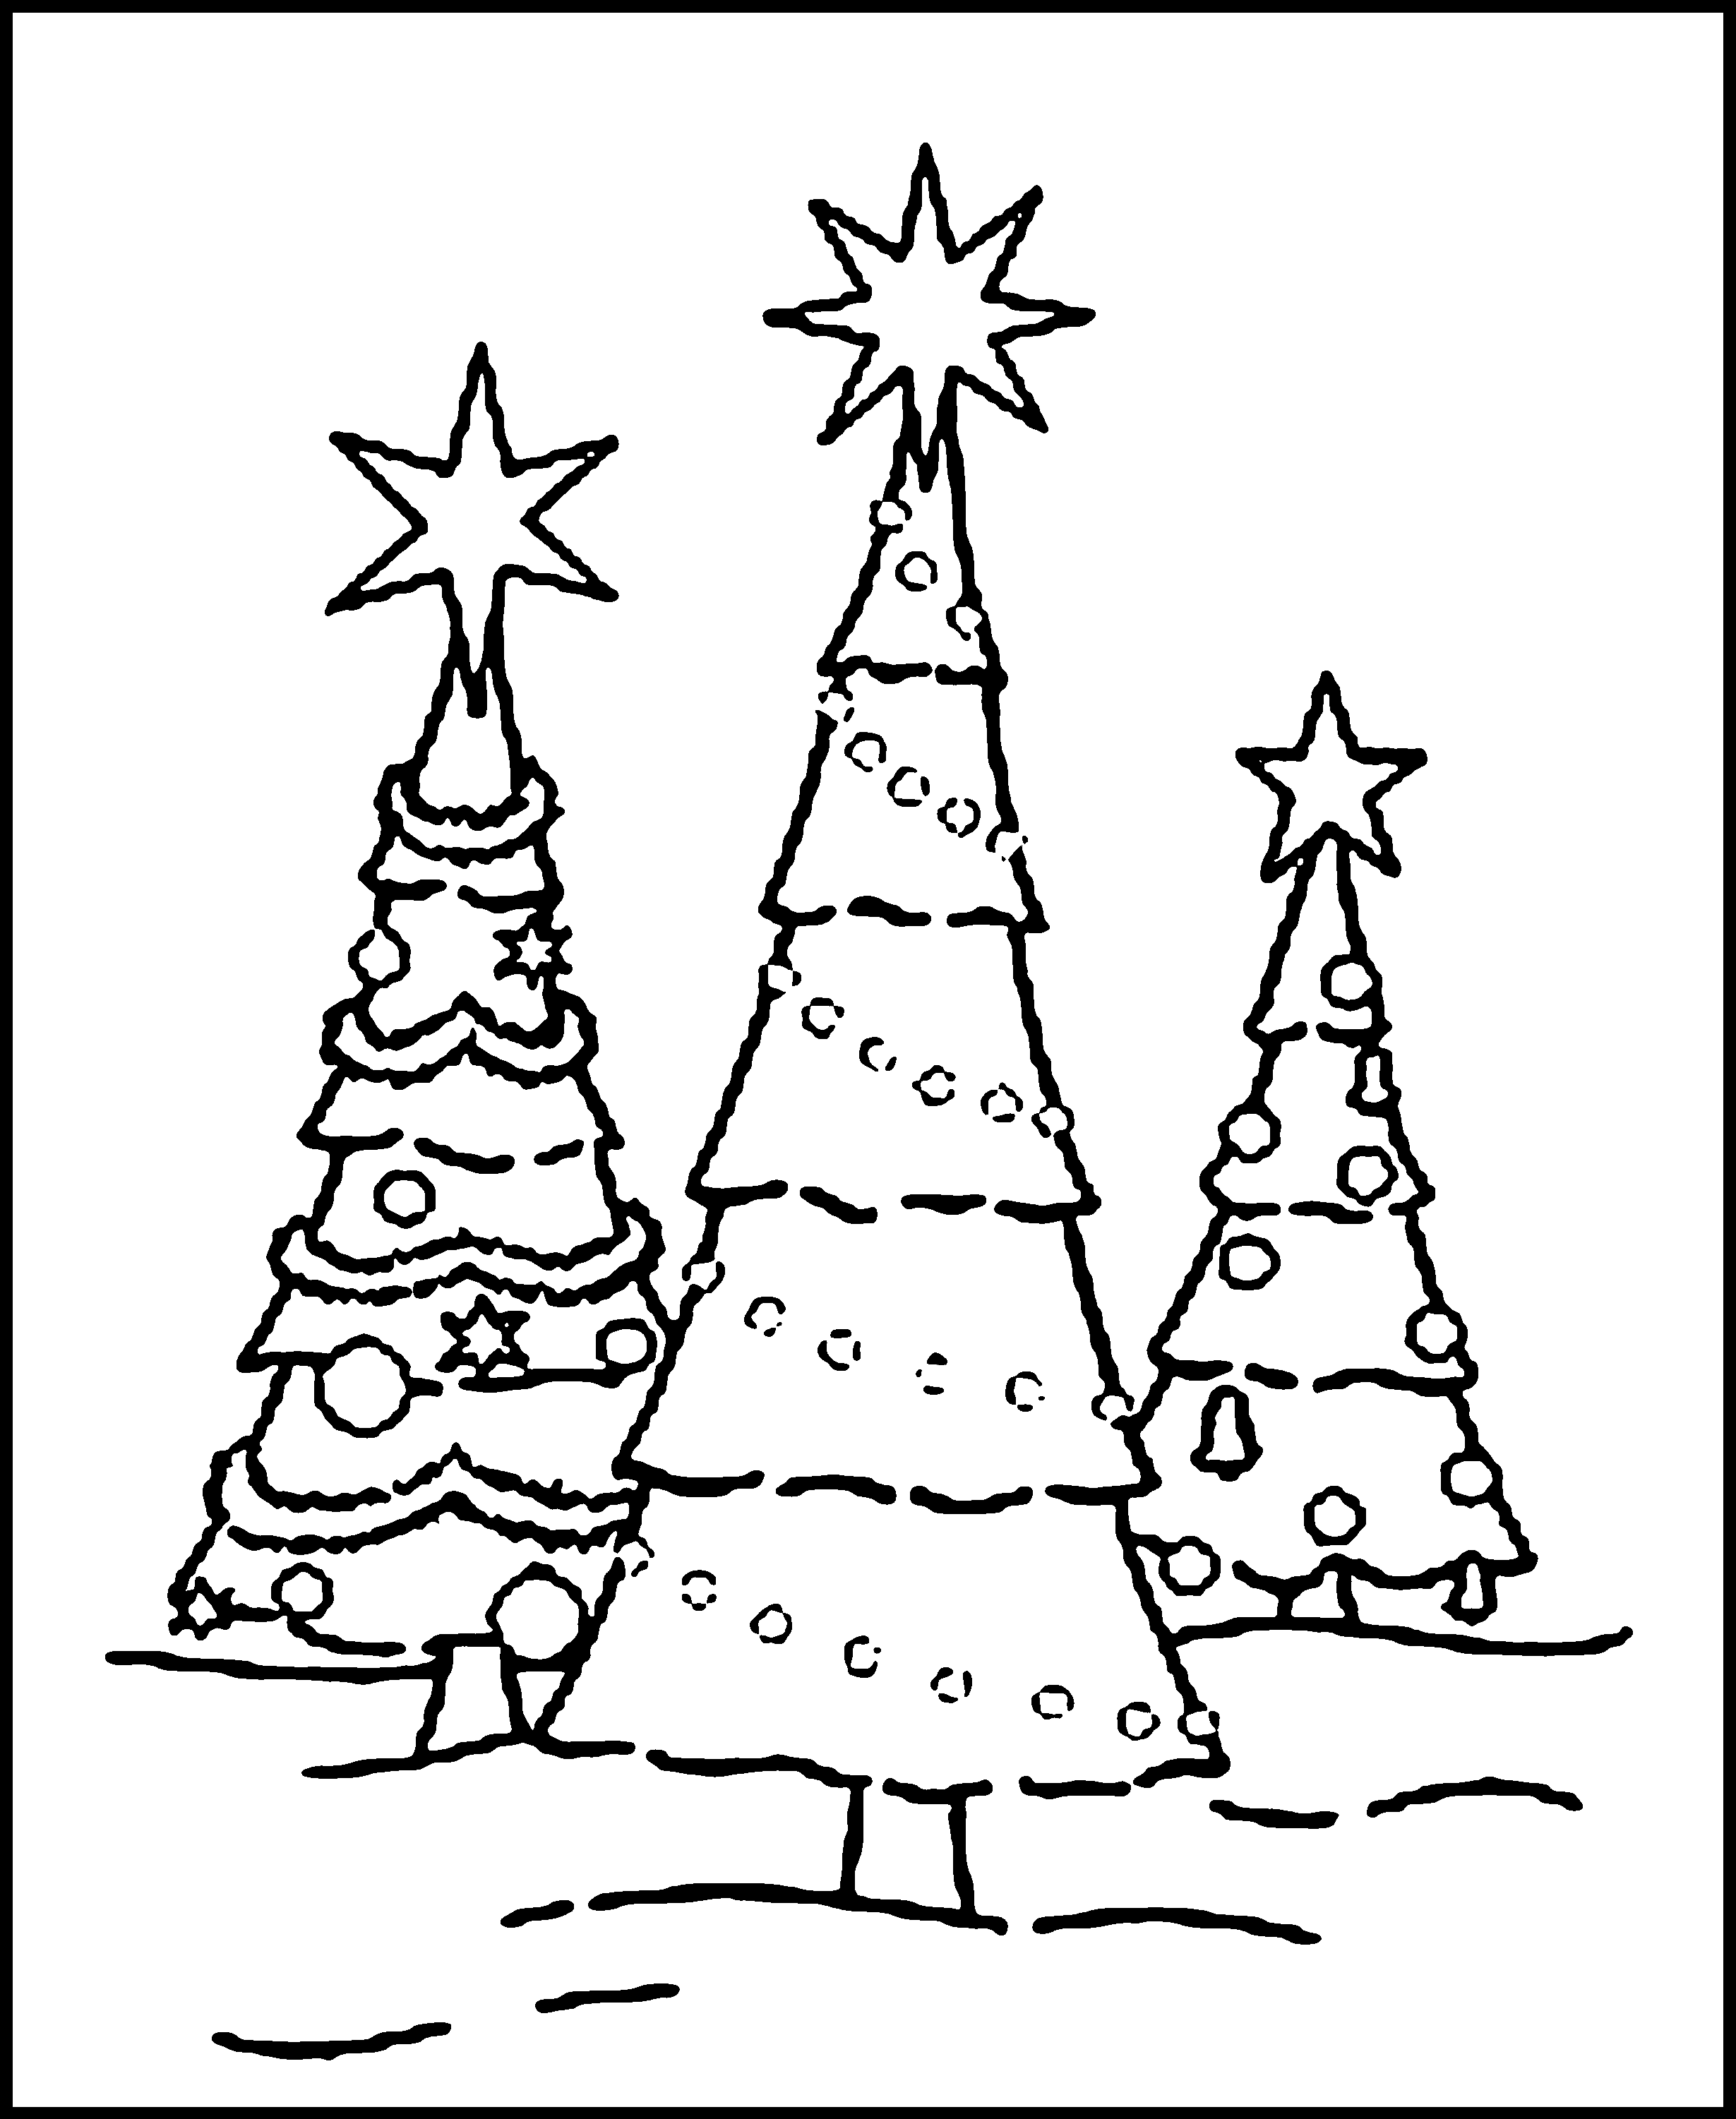 Coloring pages christmas tree blank christmas tree coloring pages - Christmas Tree Color Pages